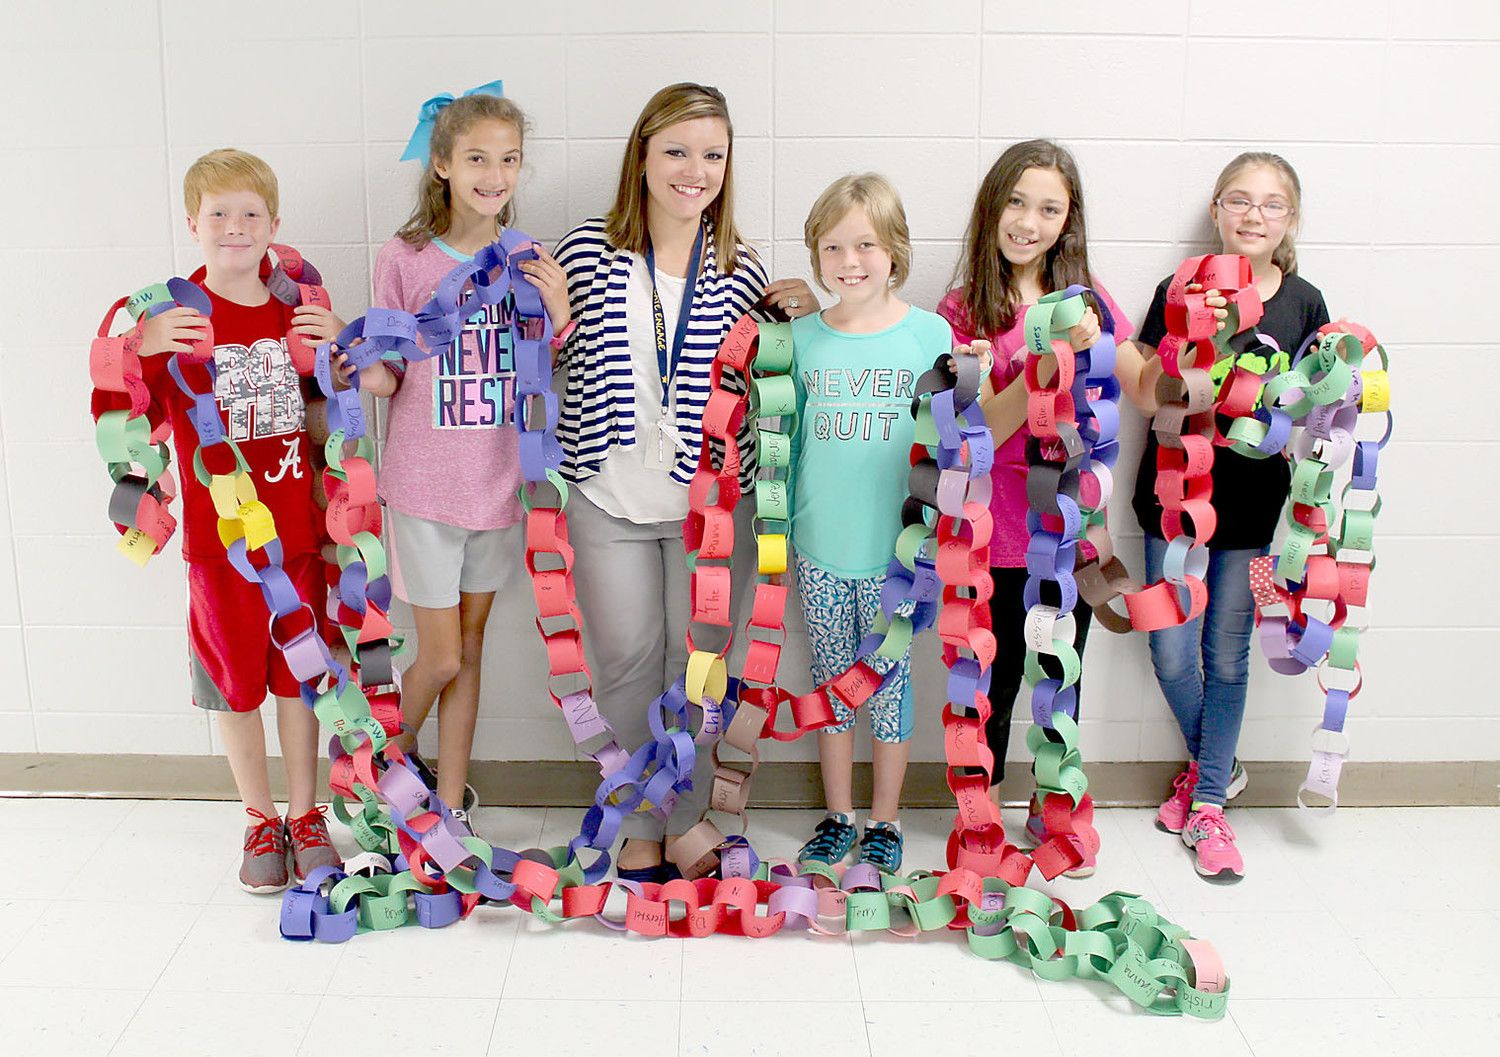 A PAPER CHAIN fundraiser at E.L. Ross Elementary helped raise $2,700 for a school affected by Hurricane Harvey. With teacher Sara Whitener, center, are student Ephraim Kyle, left, and, in no certain order, members of Girl Scout Troop 40949: Ayonna DeLuca, Brooke Jones, Eva Laslie and Deirdre McKelvey. Not pictured are Girl Scouts Caroline Condo, Emmaline Hill and Anna Longest.